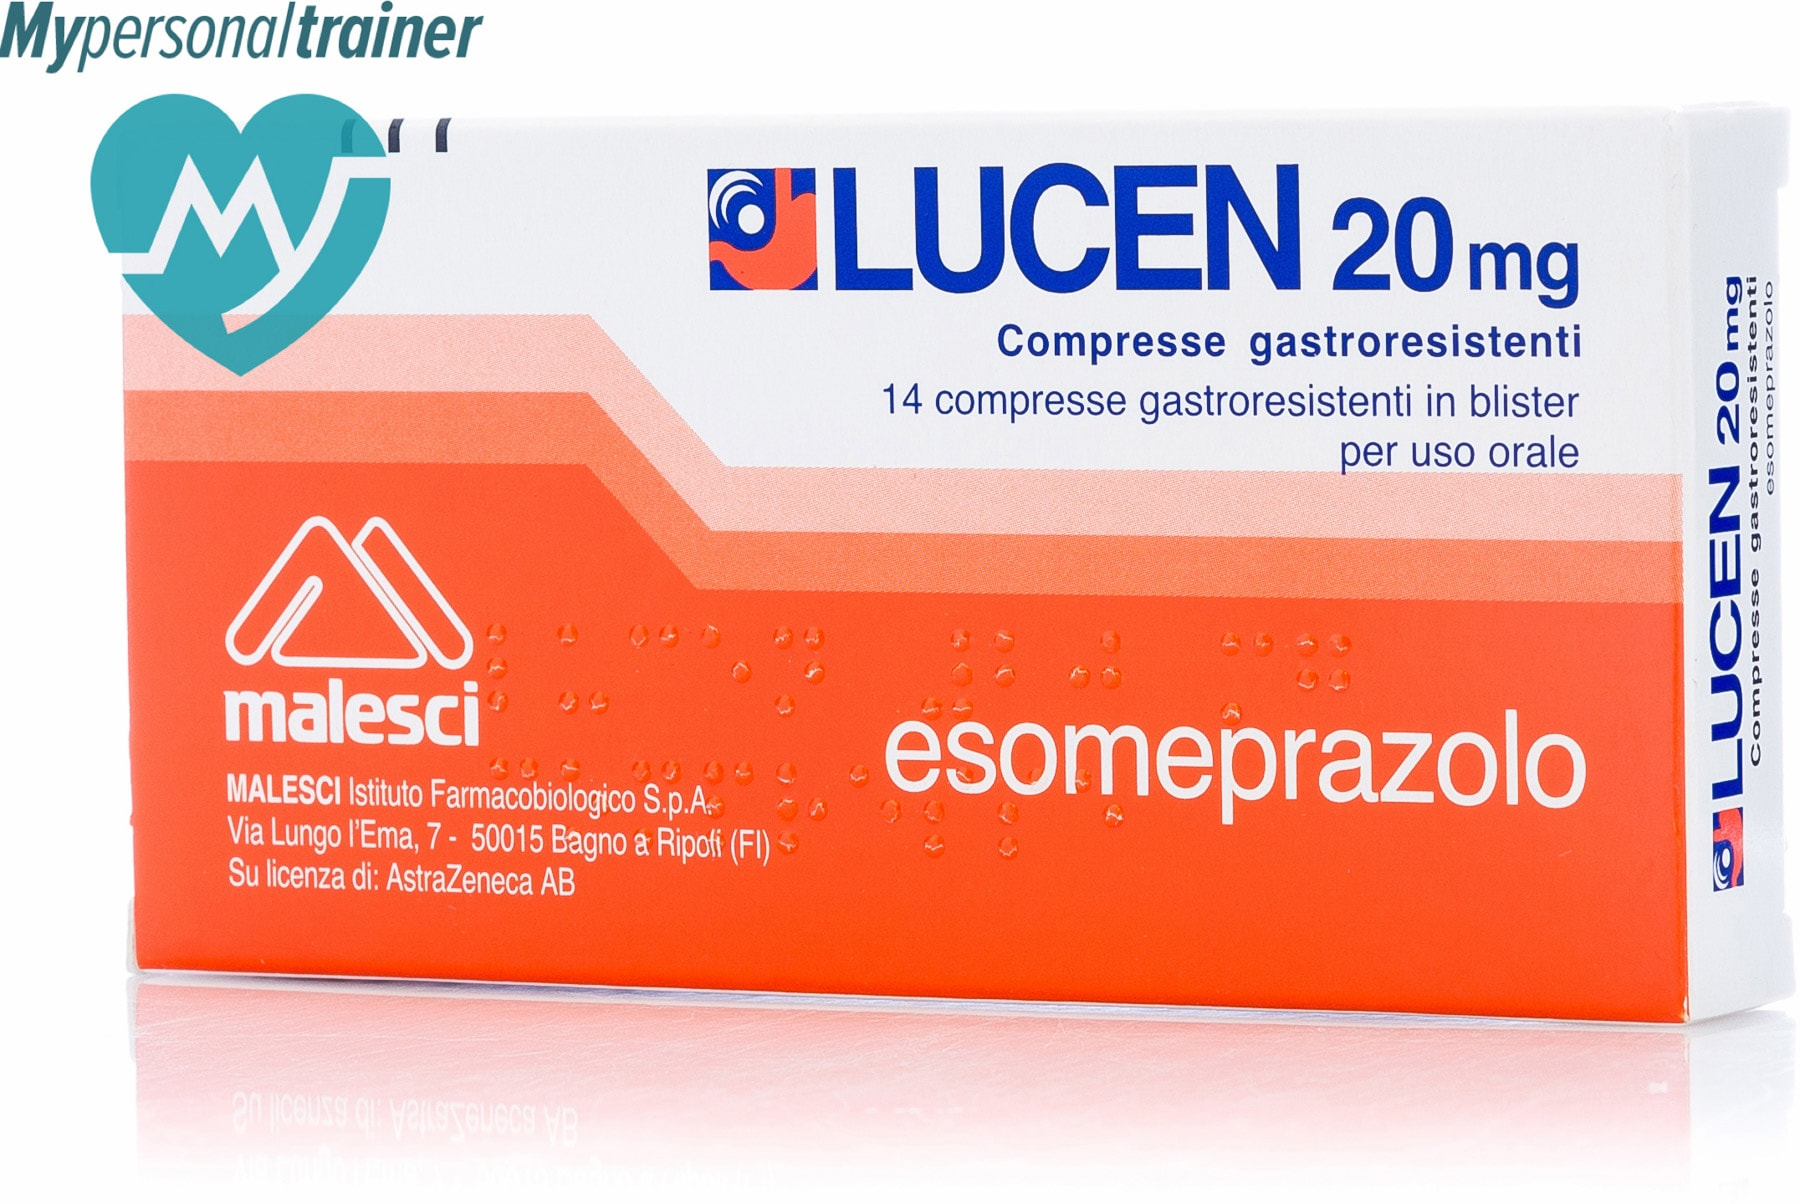 Posso Comprare Paxil 10 mg Online